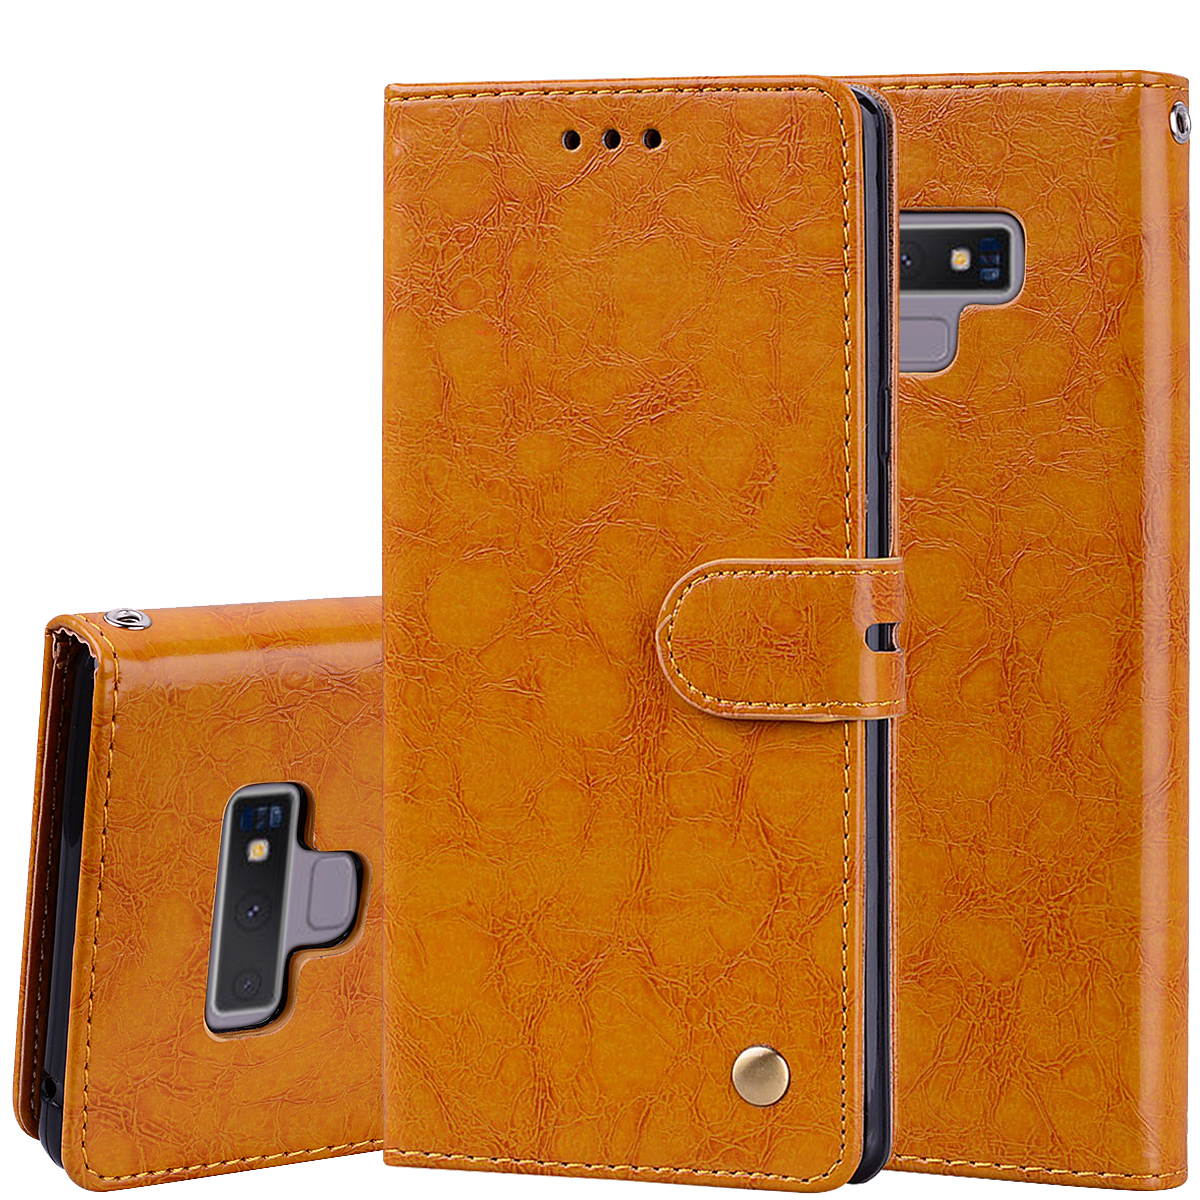 Retro Leather Case For iPhone XS MAX X XR 5 5S SE 6 6S 7 8 Plus Wallet Flip Cover For Samsung S9 S8 S7 S6 Edge S5 S4 S3 Fundas